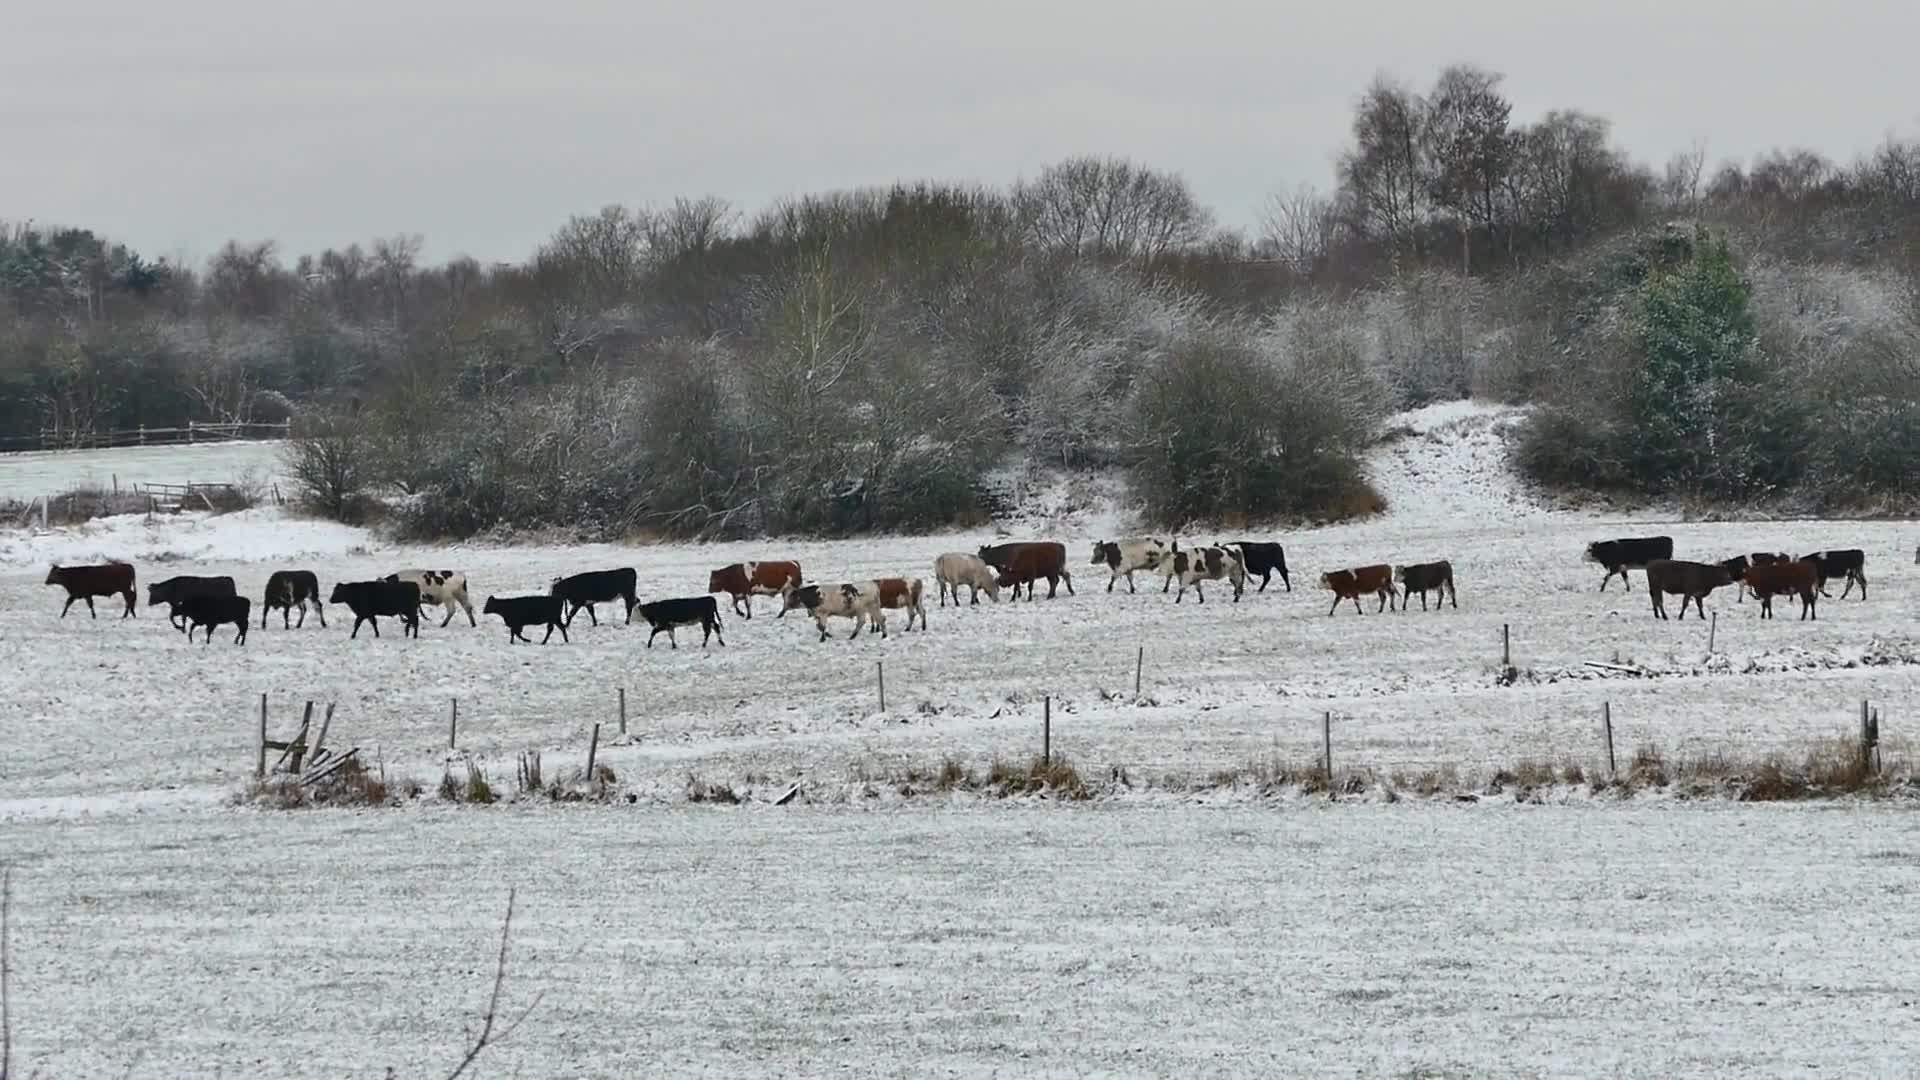 A herd of cows in the winter